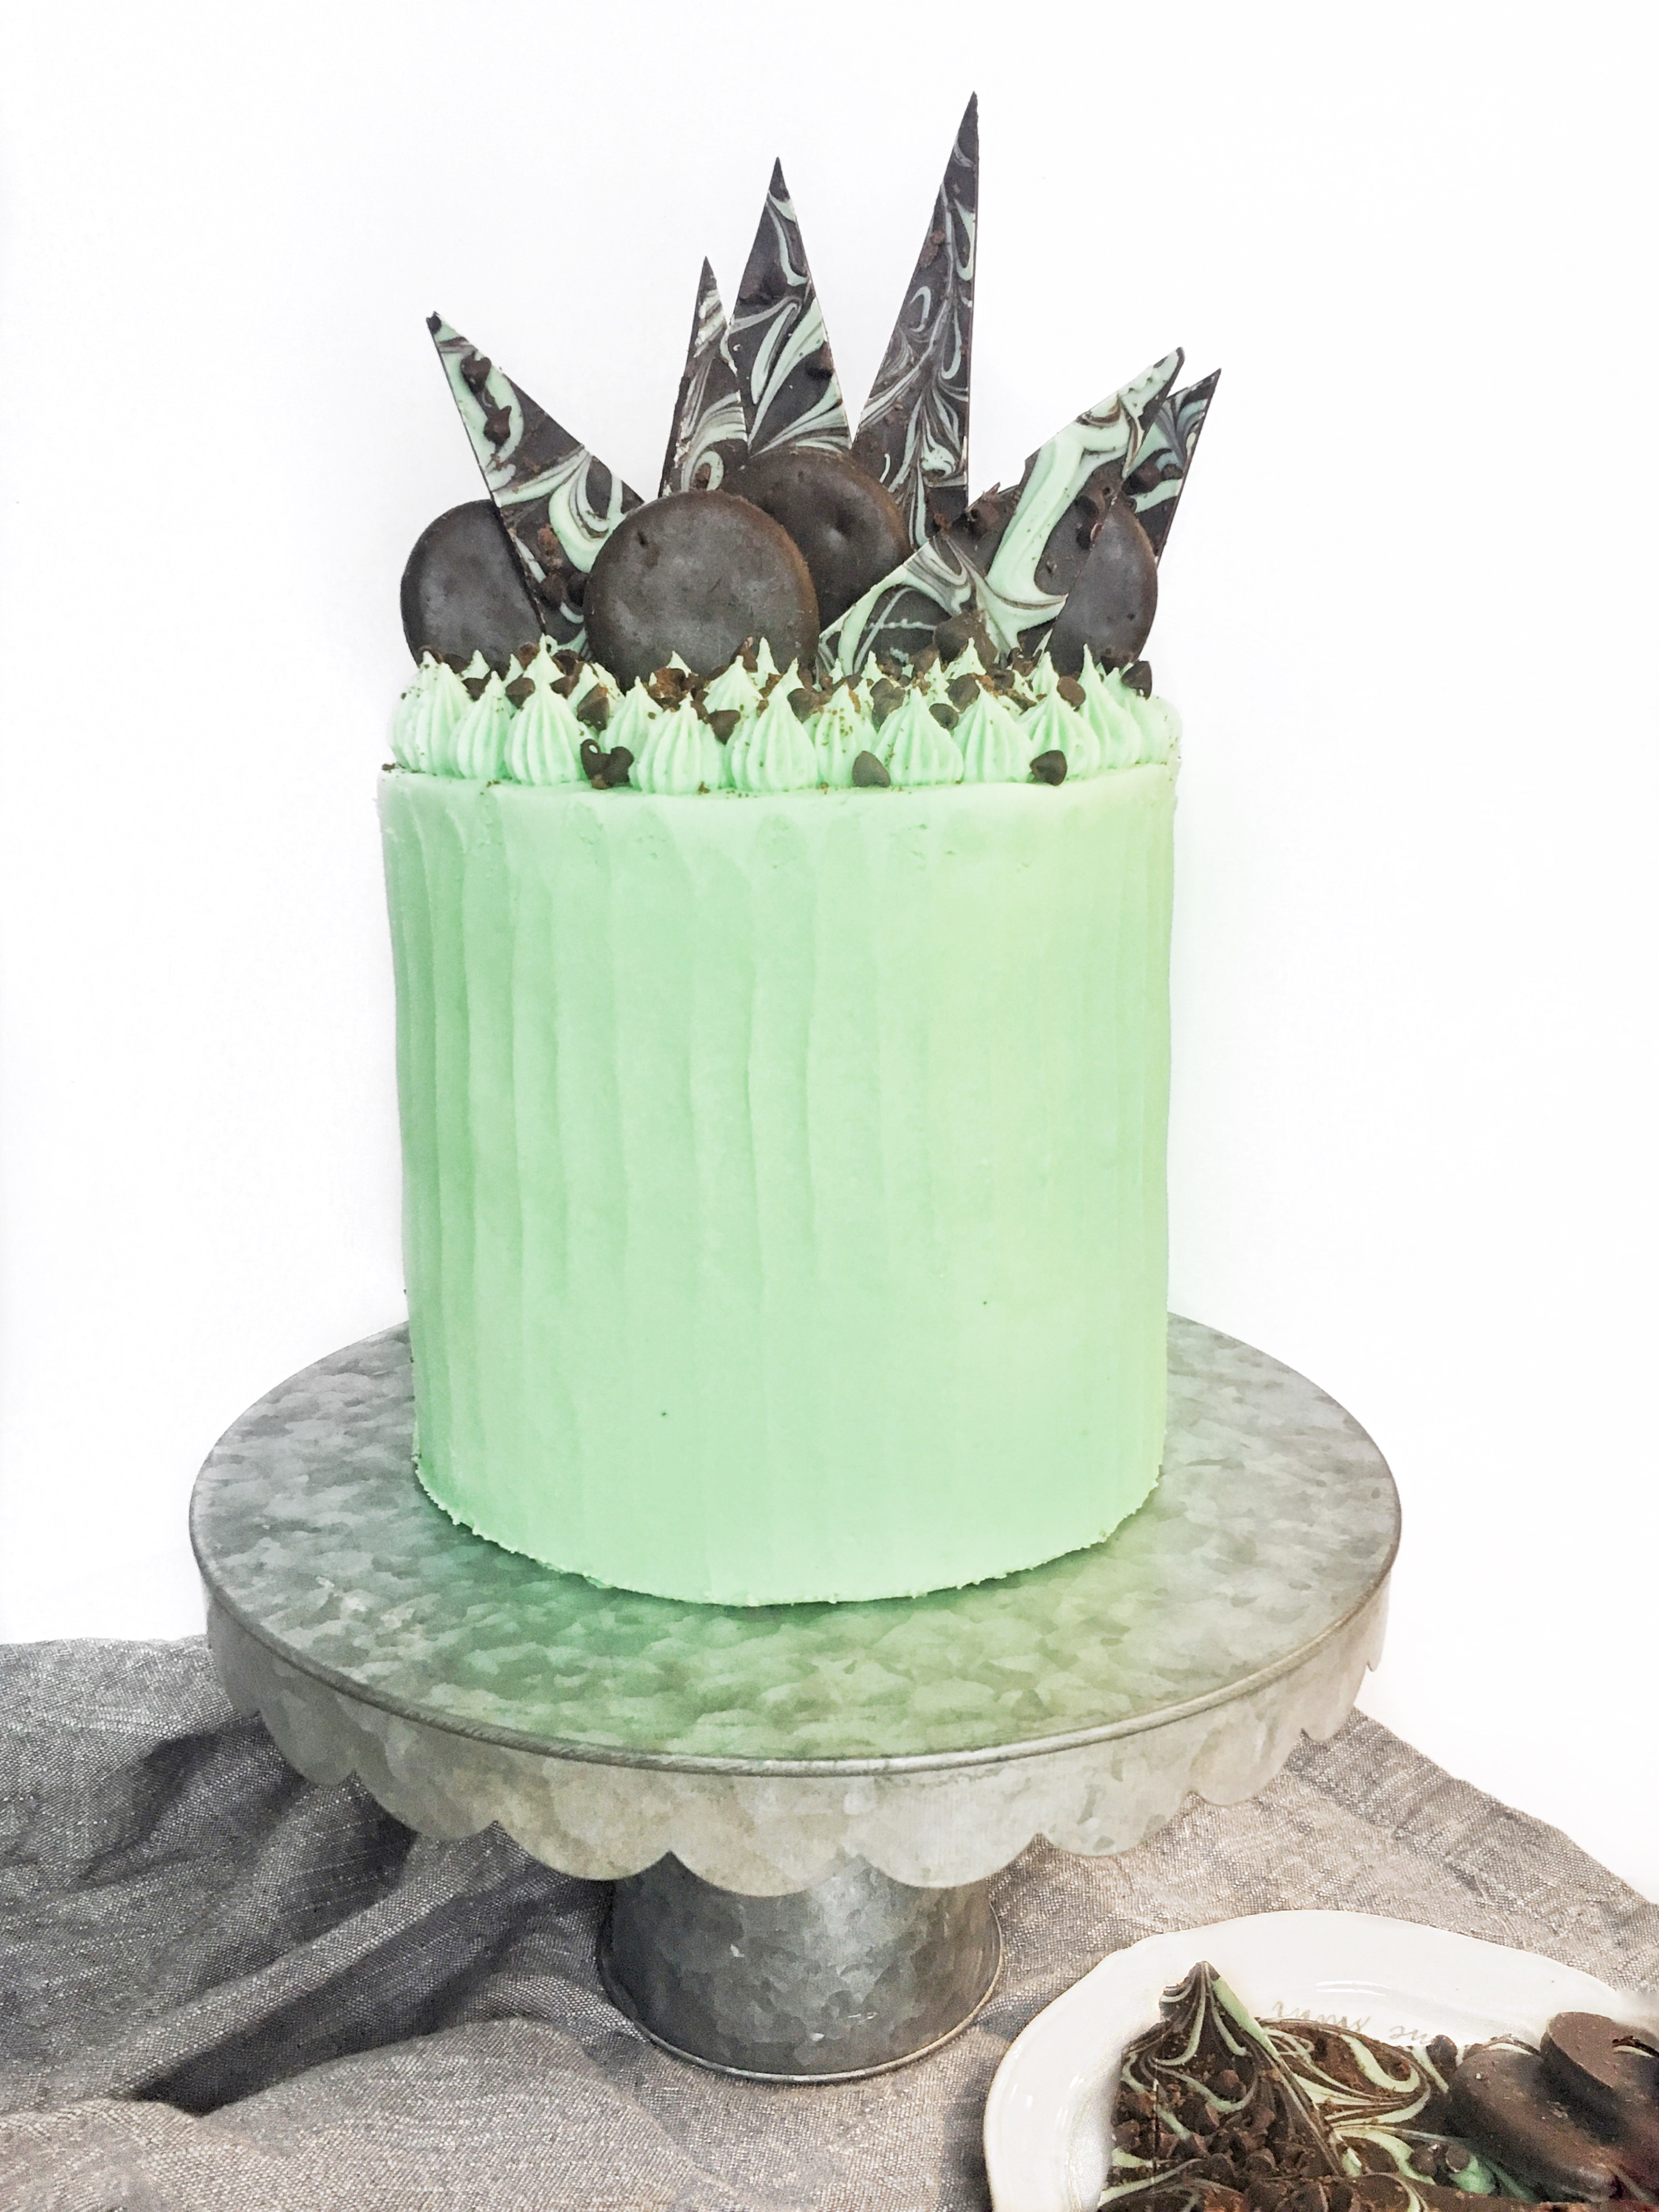 Mint Chocolate Chip And Cookies Cake Cake By Courtney